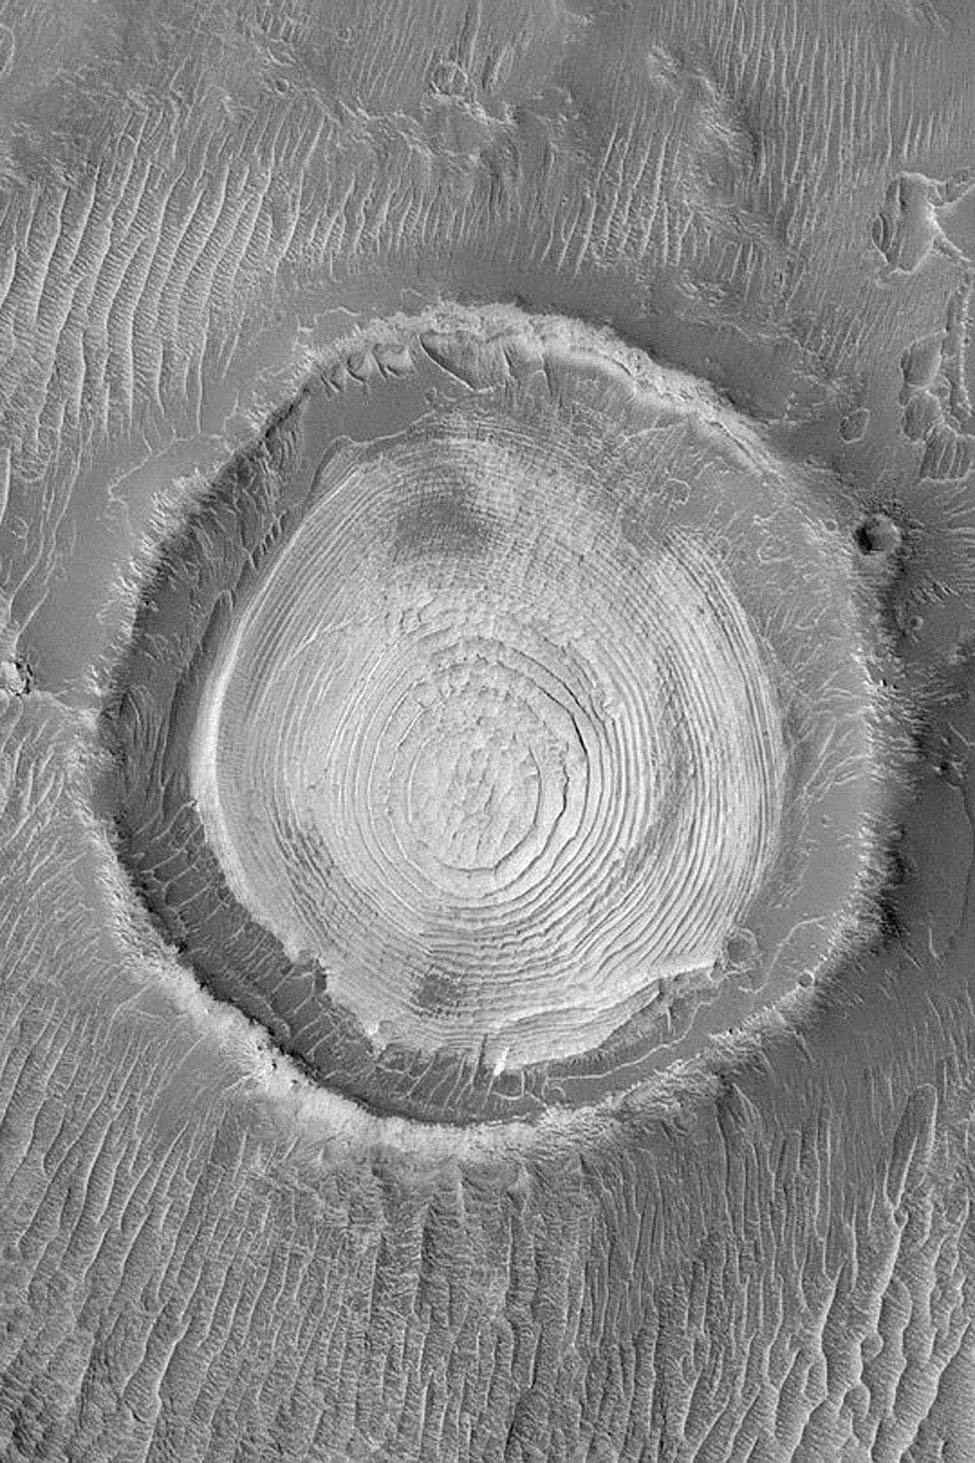 NASA's Mars Global Surveyor shows dozens of layers of similar thickness and physical properties in a wedding cake-like stack in the middle of an old meteor impact crater in northwestern Schiaparelli Basin on Mars.